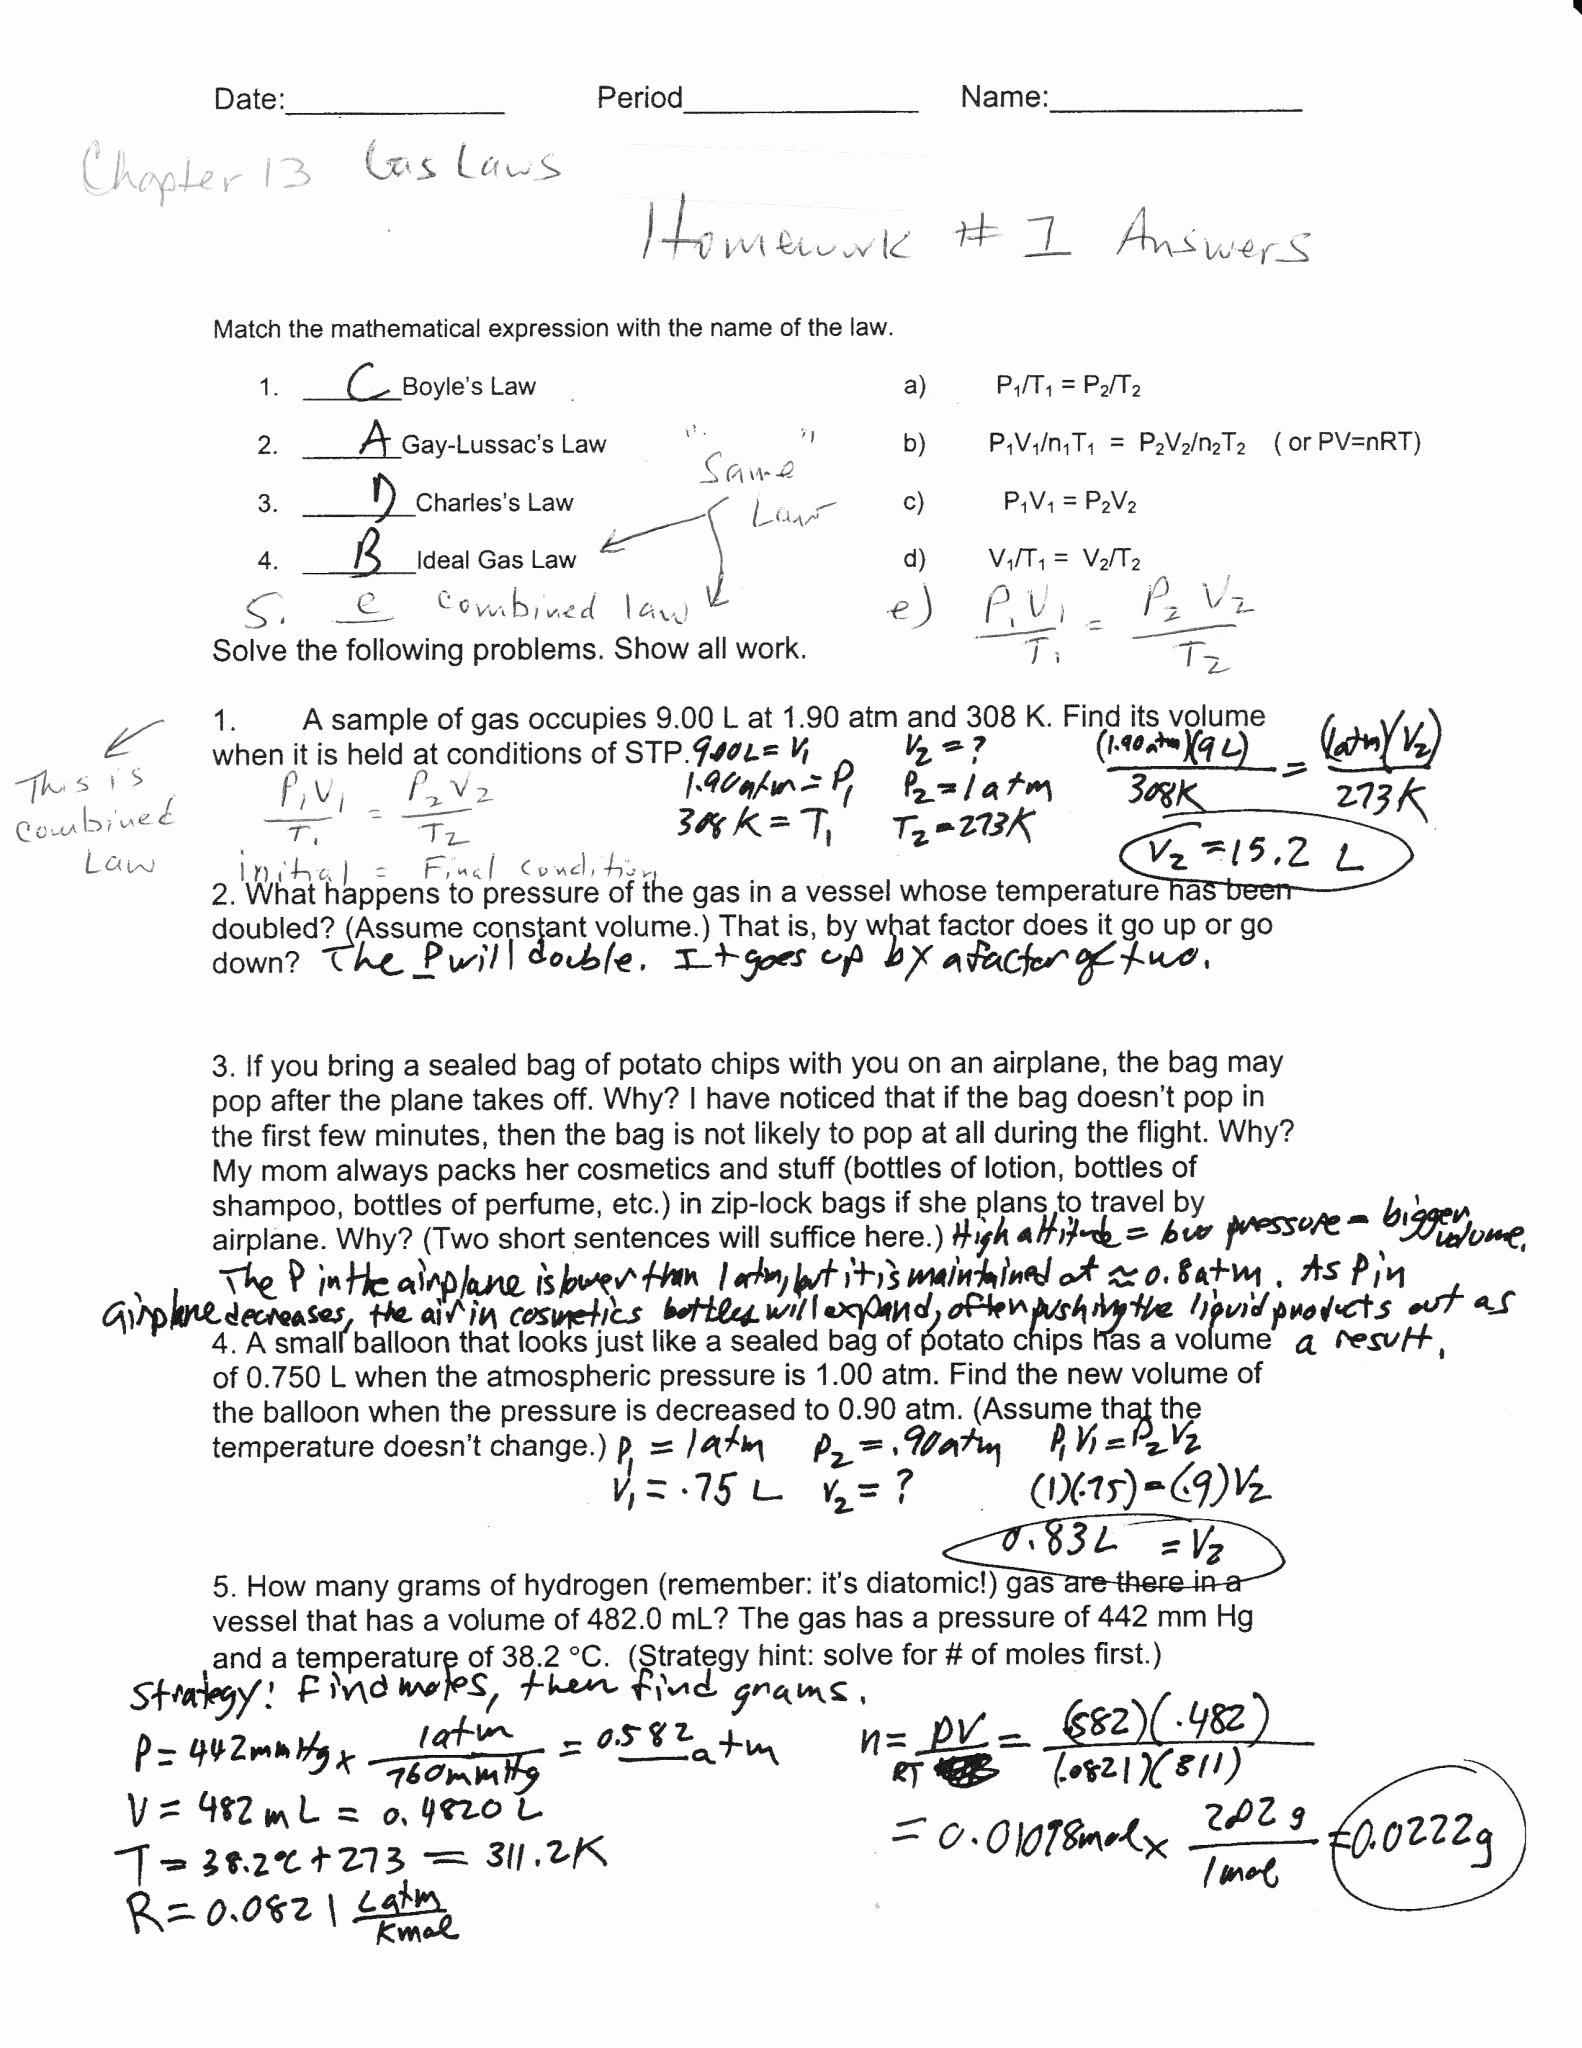 Metric Conversion Worksheet Chemistry Fresh Metric Conversion Worksheet Chemistry